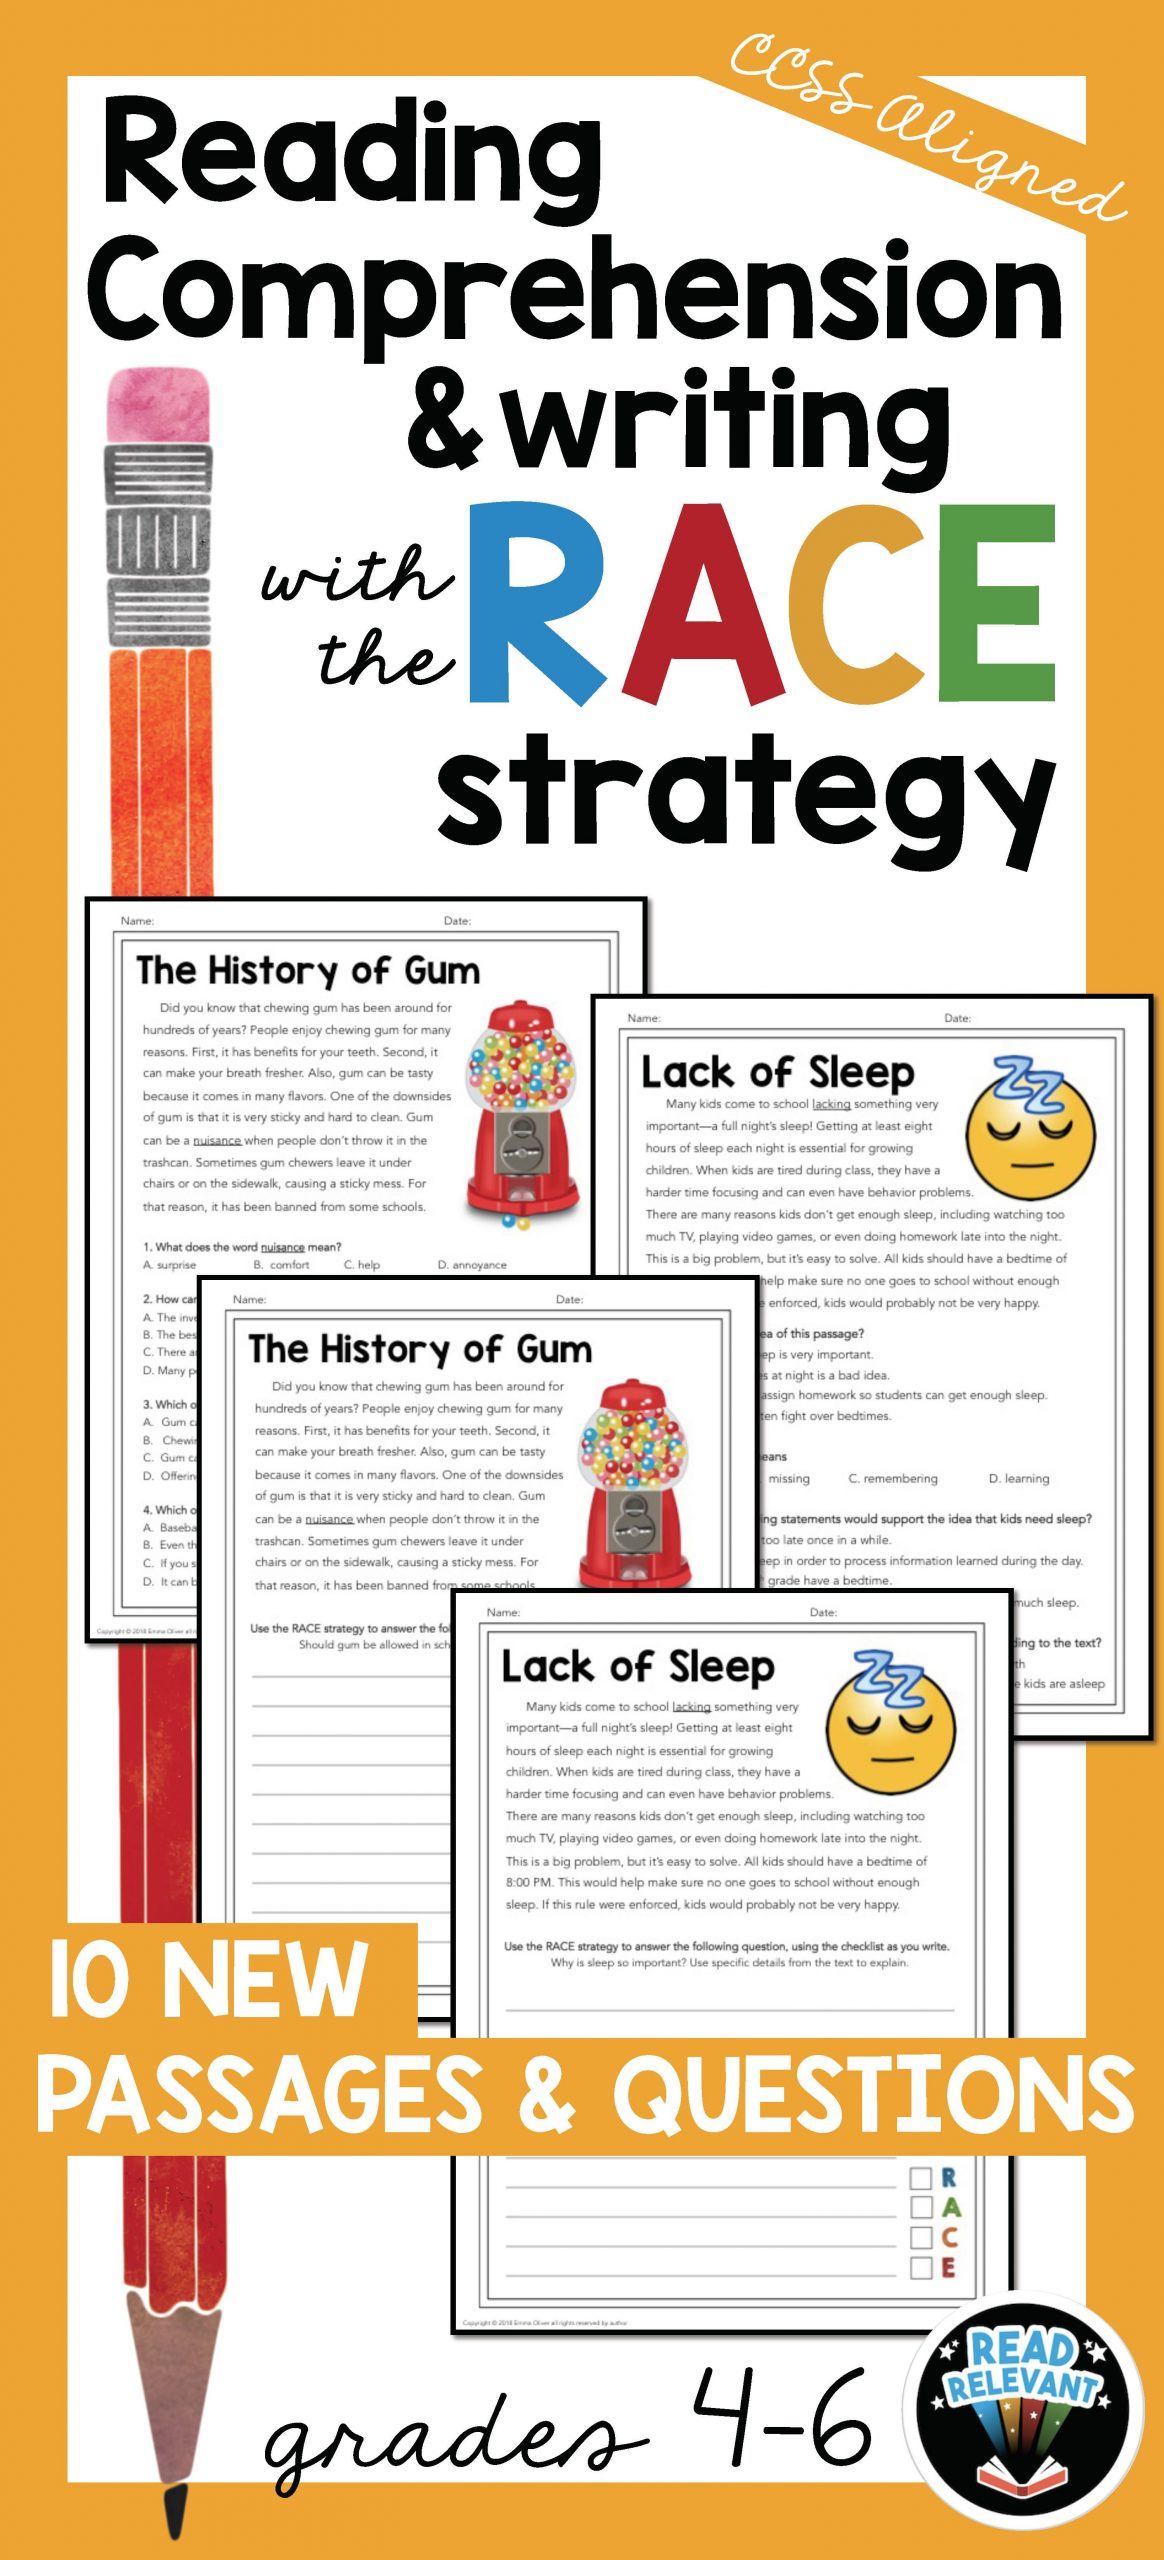 Race Writing Strategy Worksheet Reading Prehension and Writing with the Race Strategy